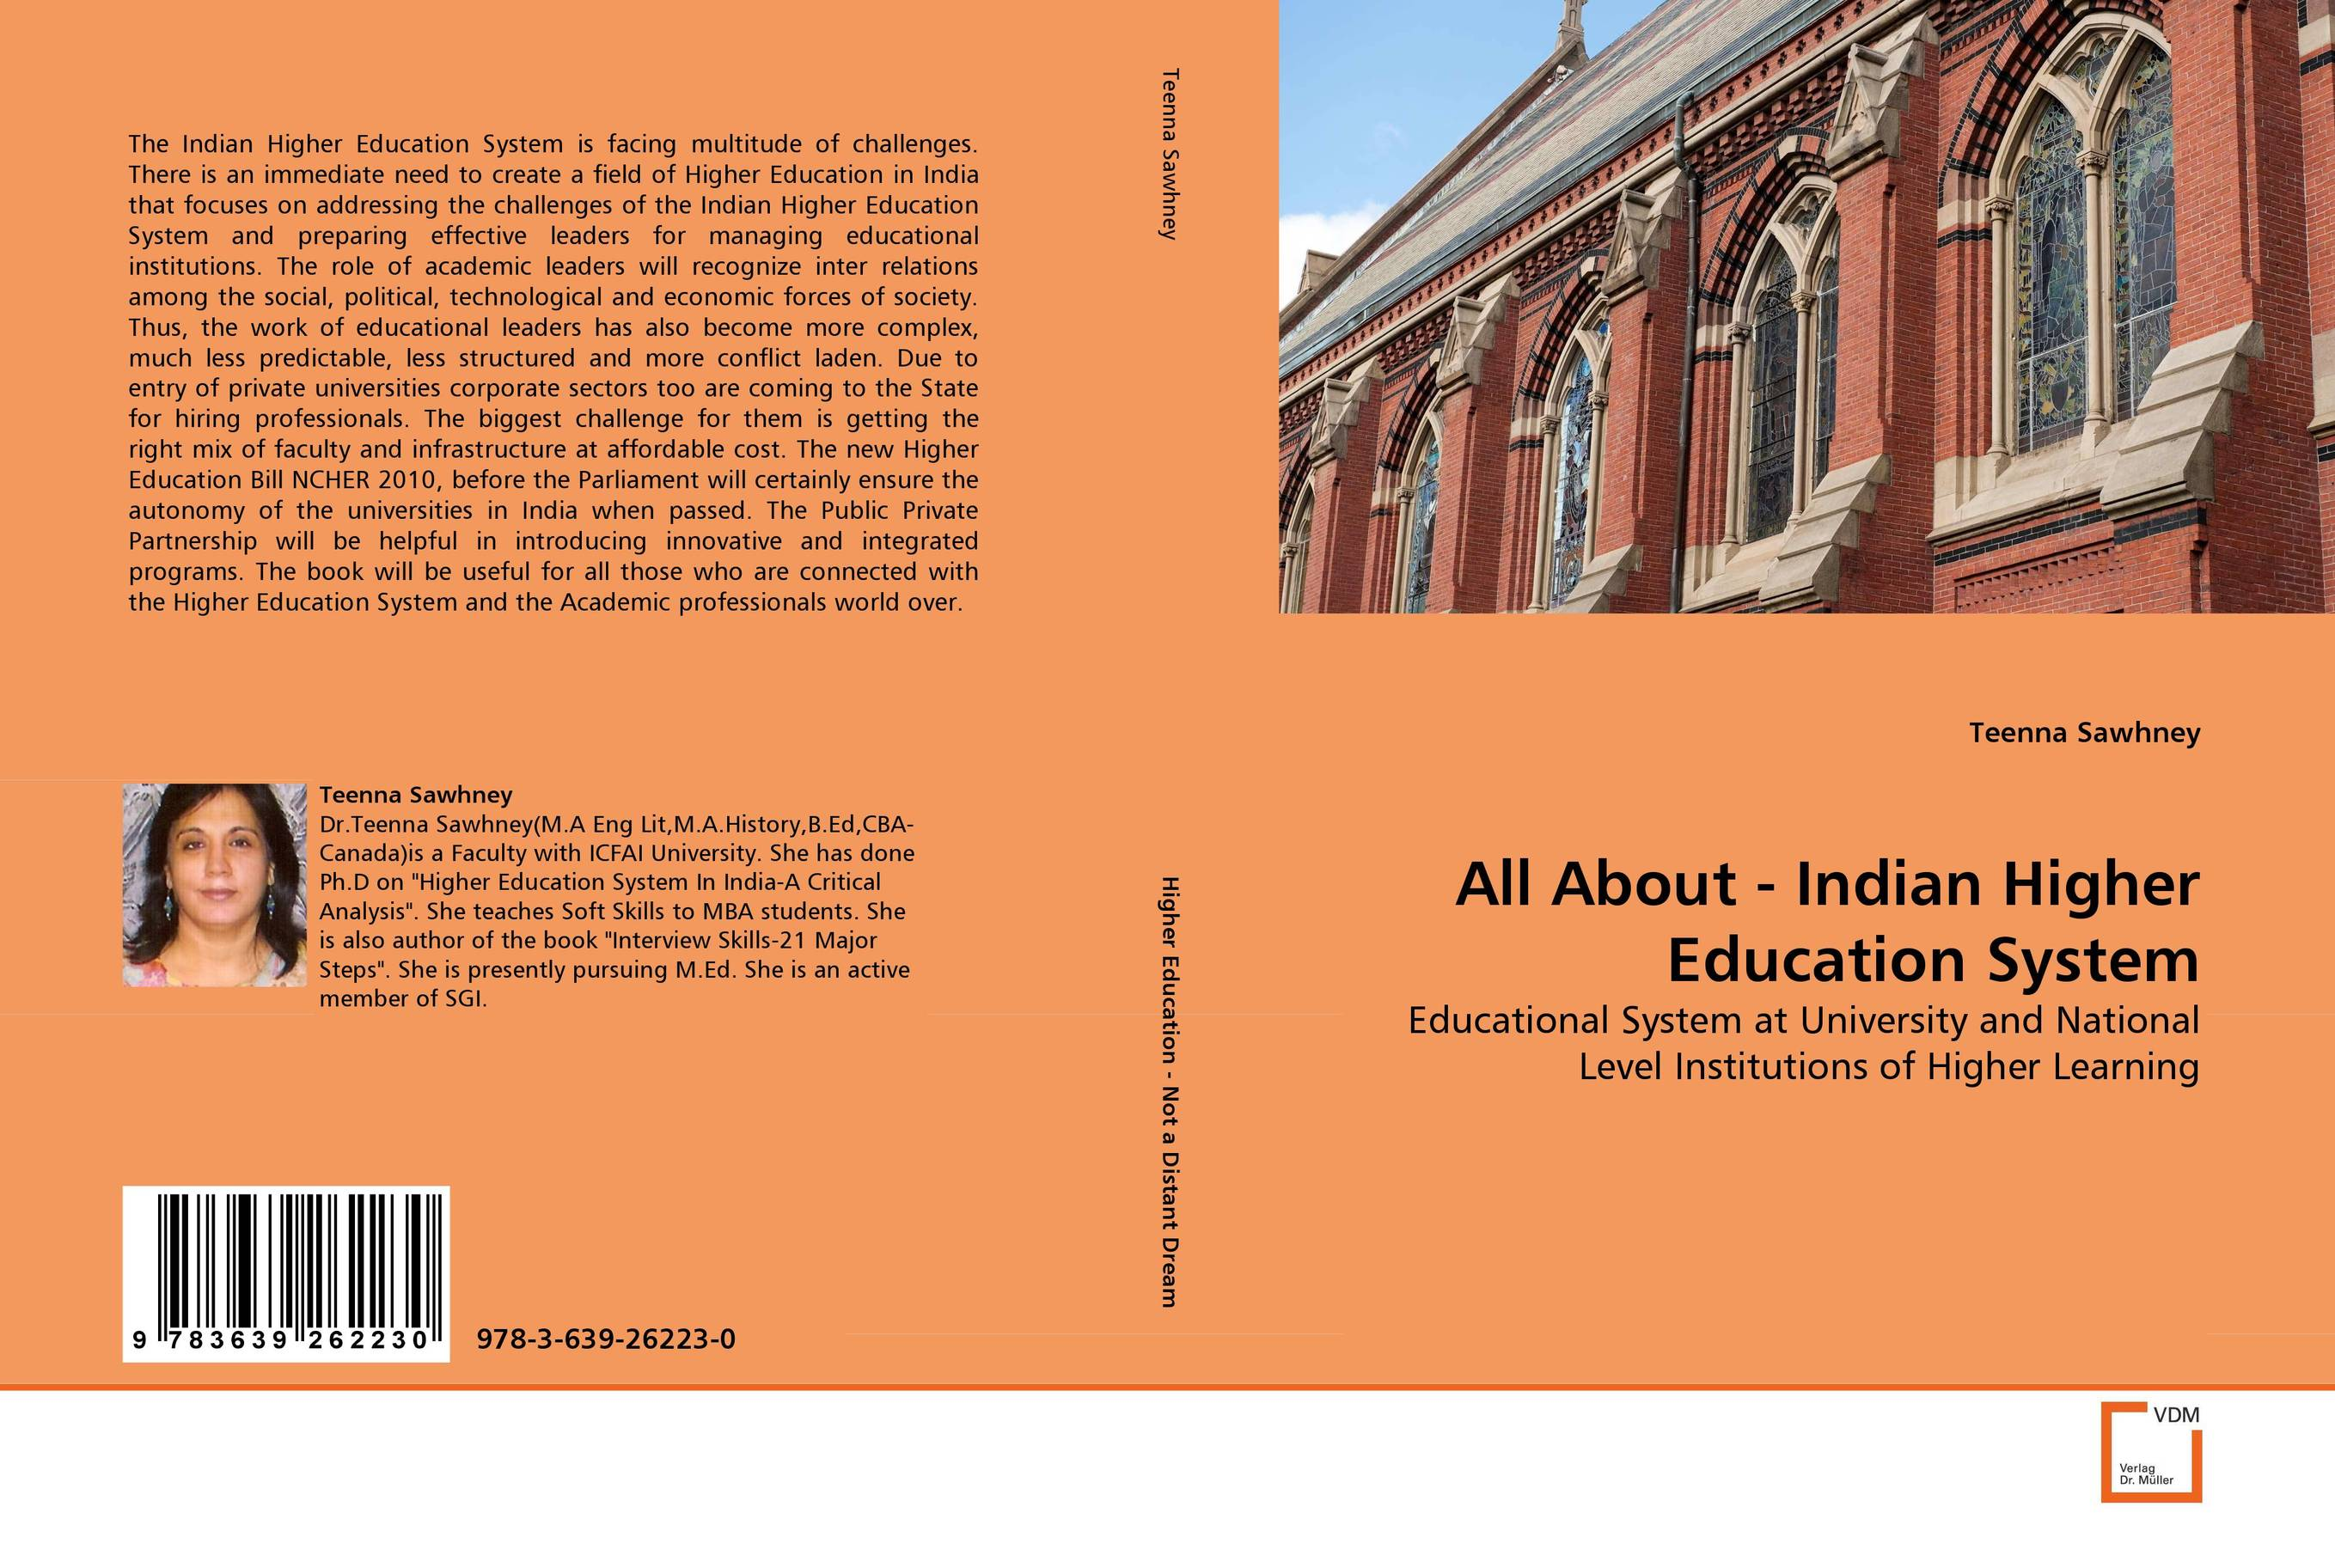 ethics in the indian higher education system Our curriculum is designed to expose students to the full institutional and social context of the american higher education system the course of study helps students to consider all of the important factors and stakeholders that will impact their professional practice.